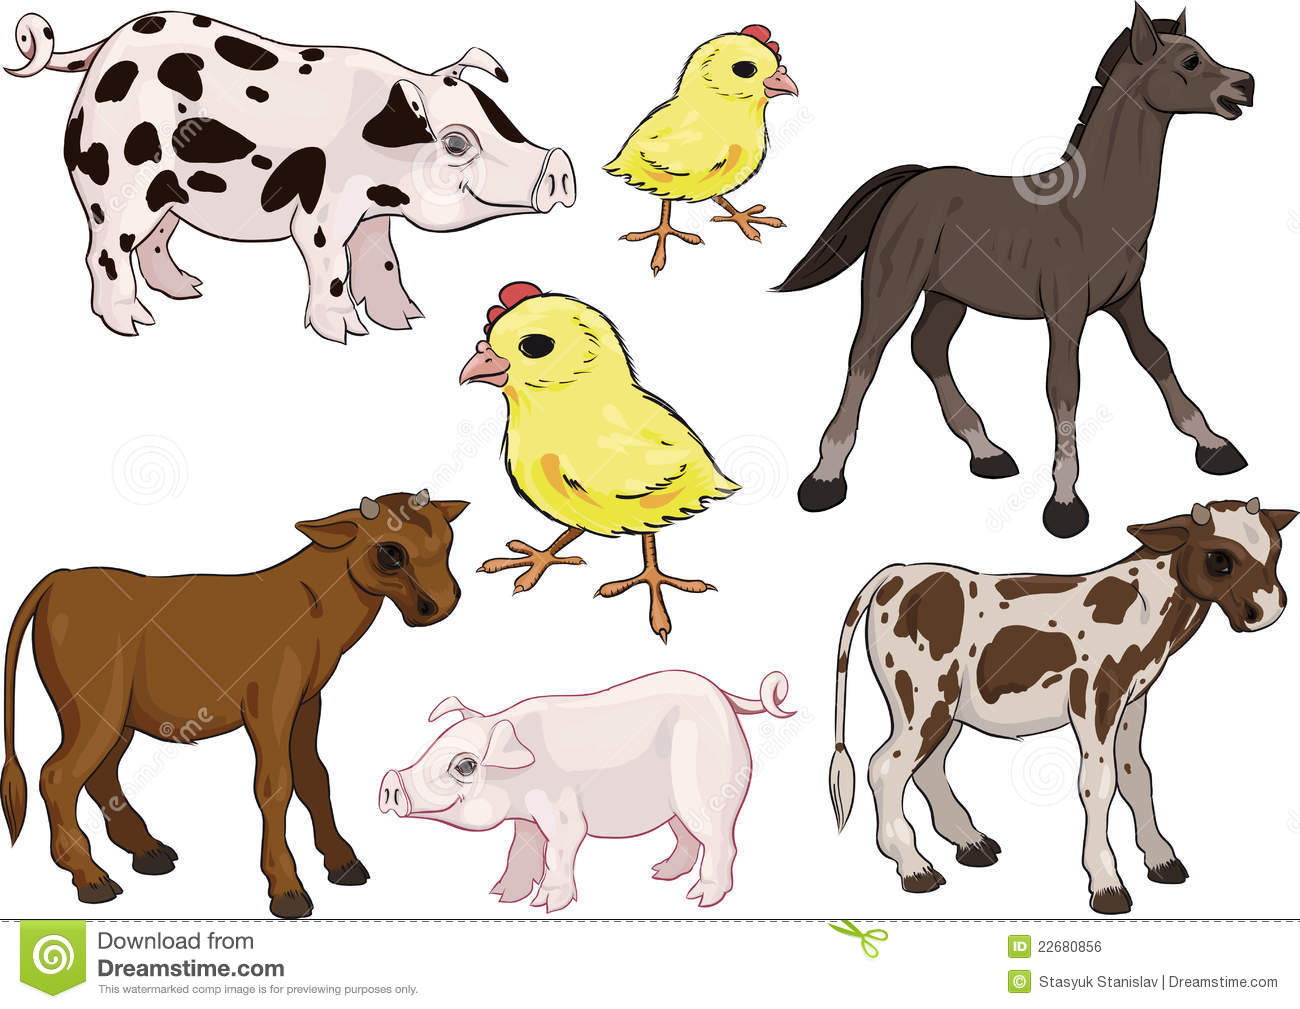 Baby Farm Animals Set Royalty Free Stock Image - Image: 22680856